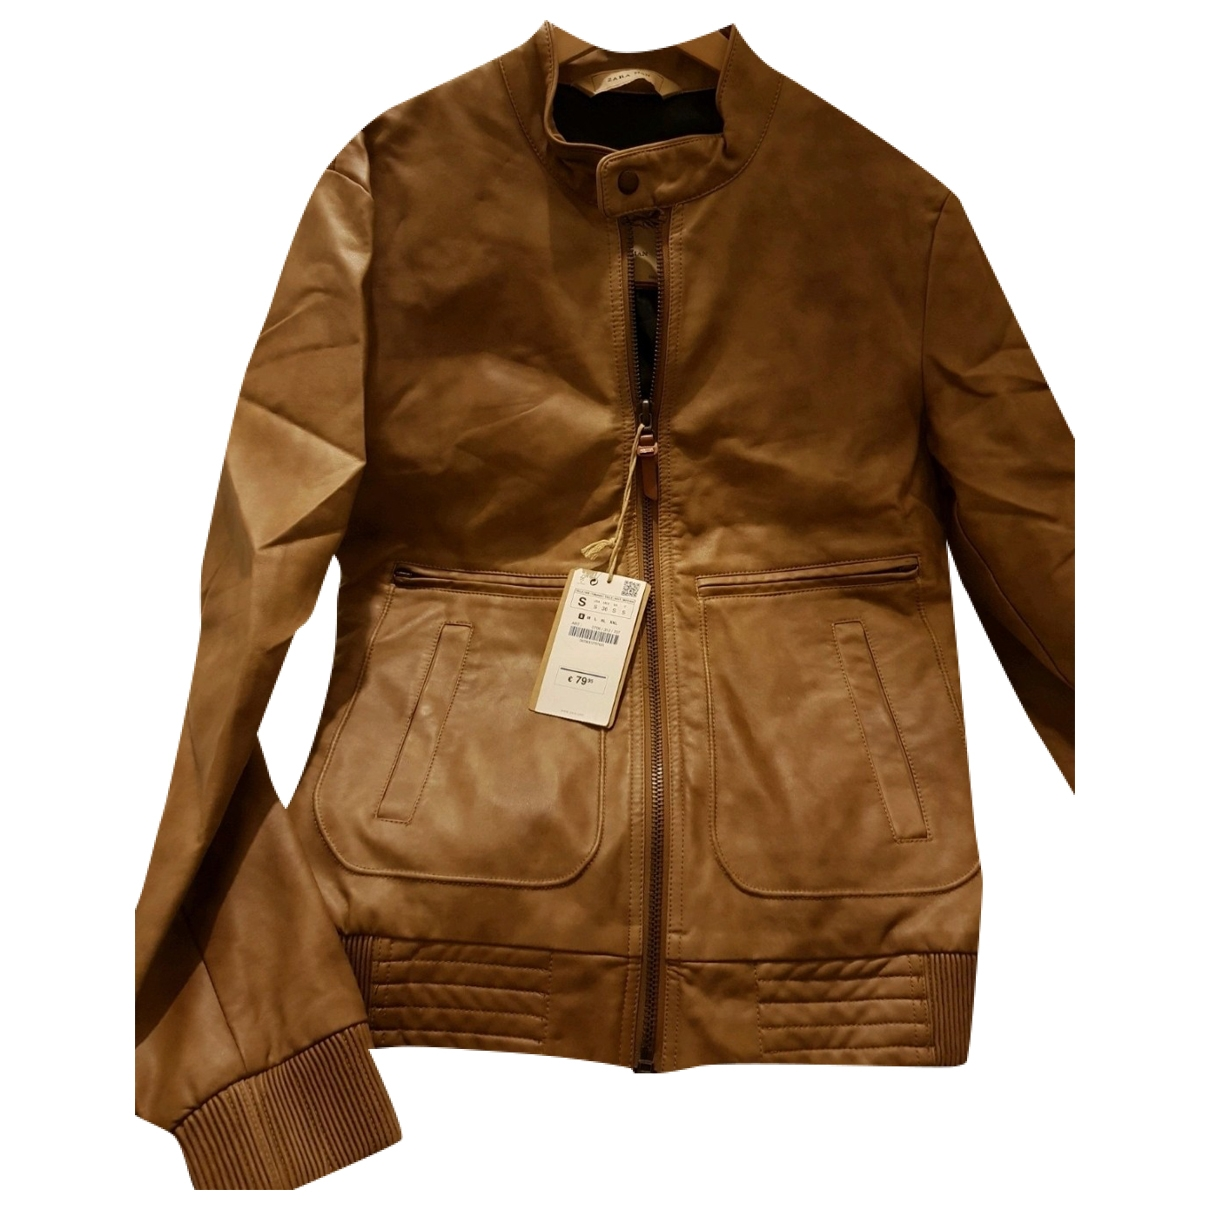 Zara \N Leather jacket  for Men S International